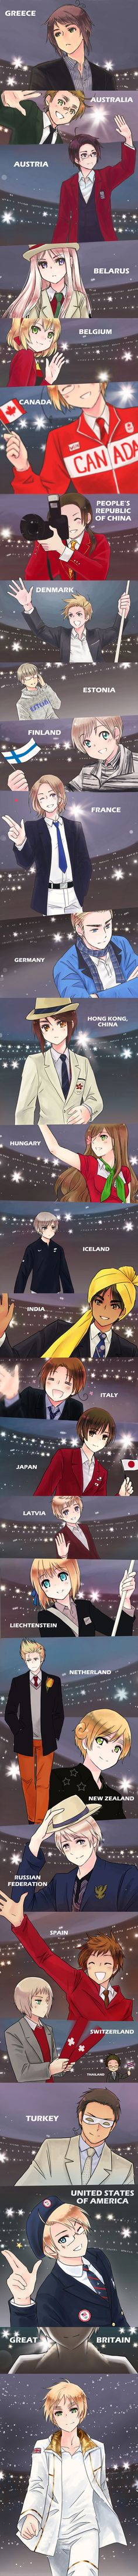 aph Olympic parade by ~mikitaka on deviantART